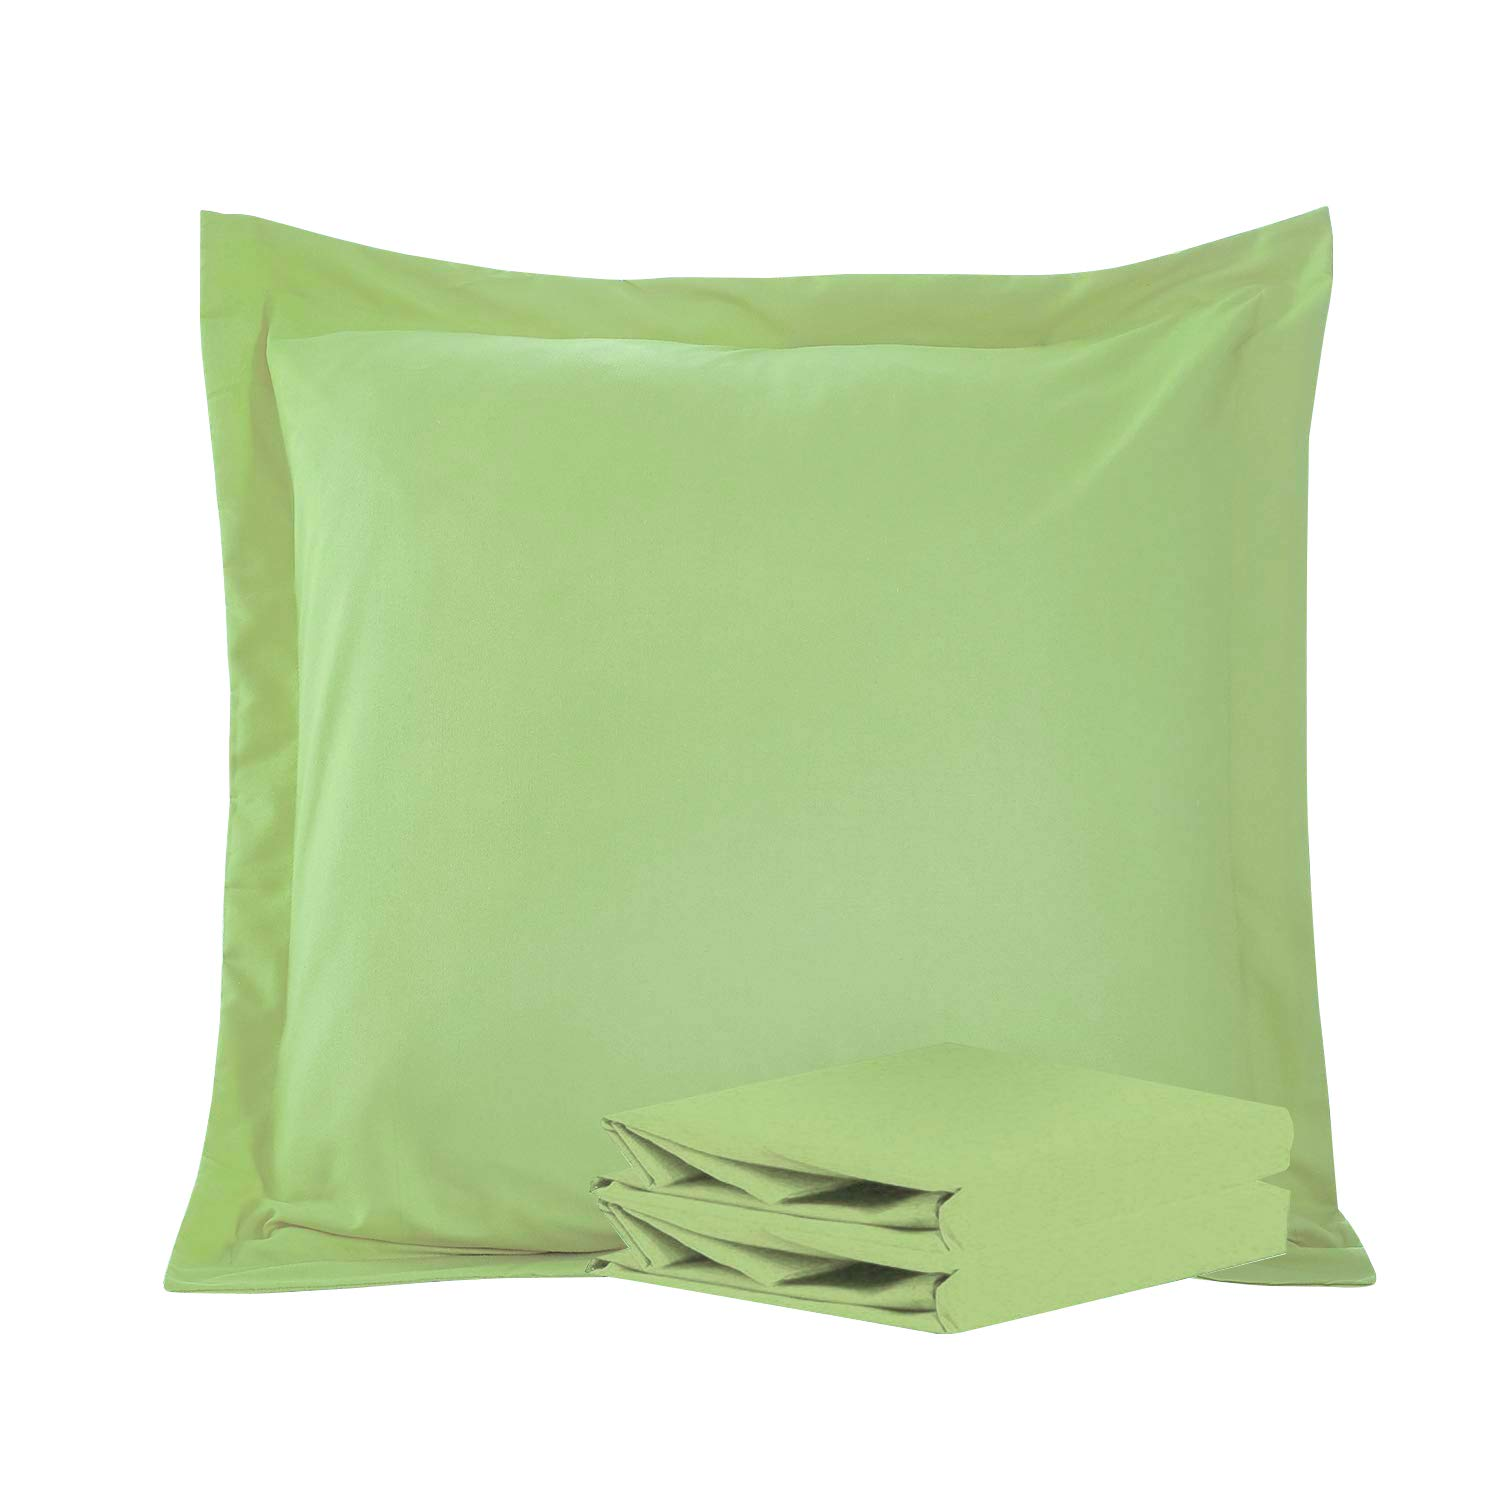 """NTBAY 100% Brushed Microfiber European Square Throw Pillow Cushion Cover Set of 2, Soft and Cozy, Wrinkle, Fade, Stain Resistant (Euro 26""""x26"""", Sage Green)"""